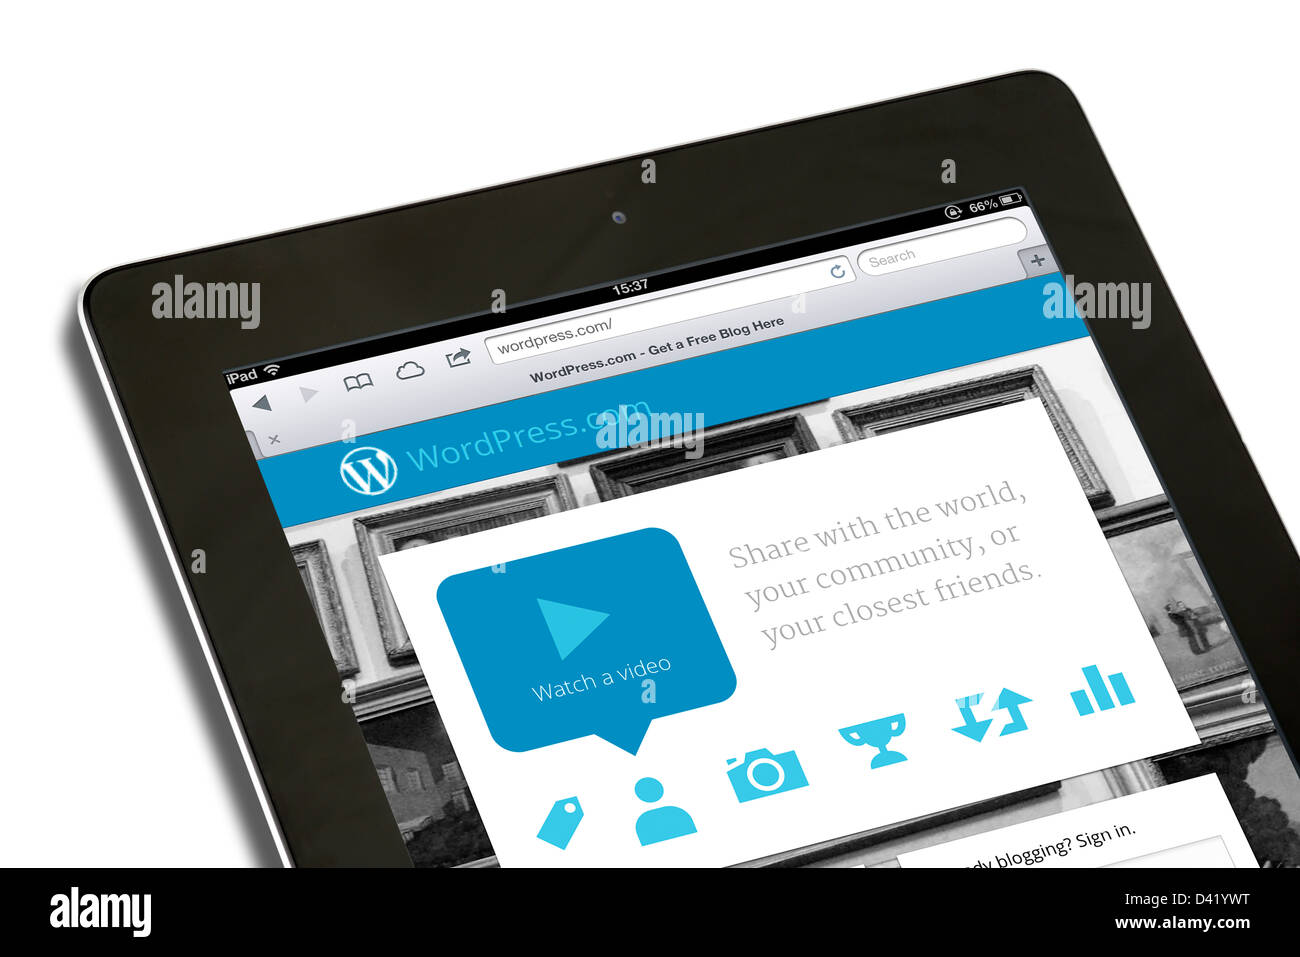 Website of the open source blogging tool, Wordpress, viewed on an iPad 4 - Stock Image